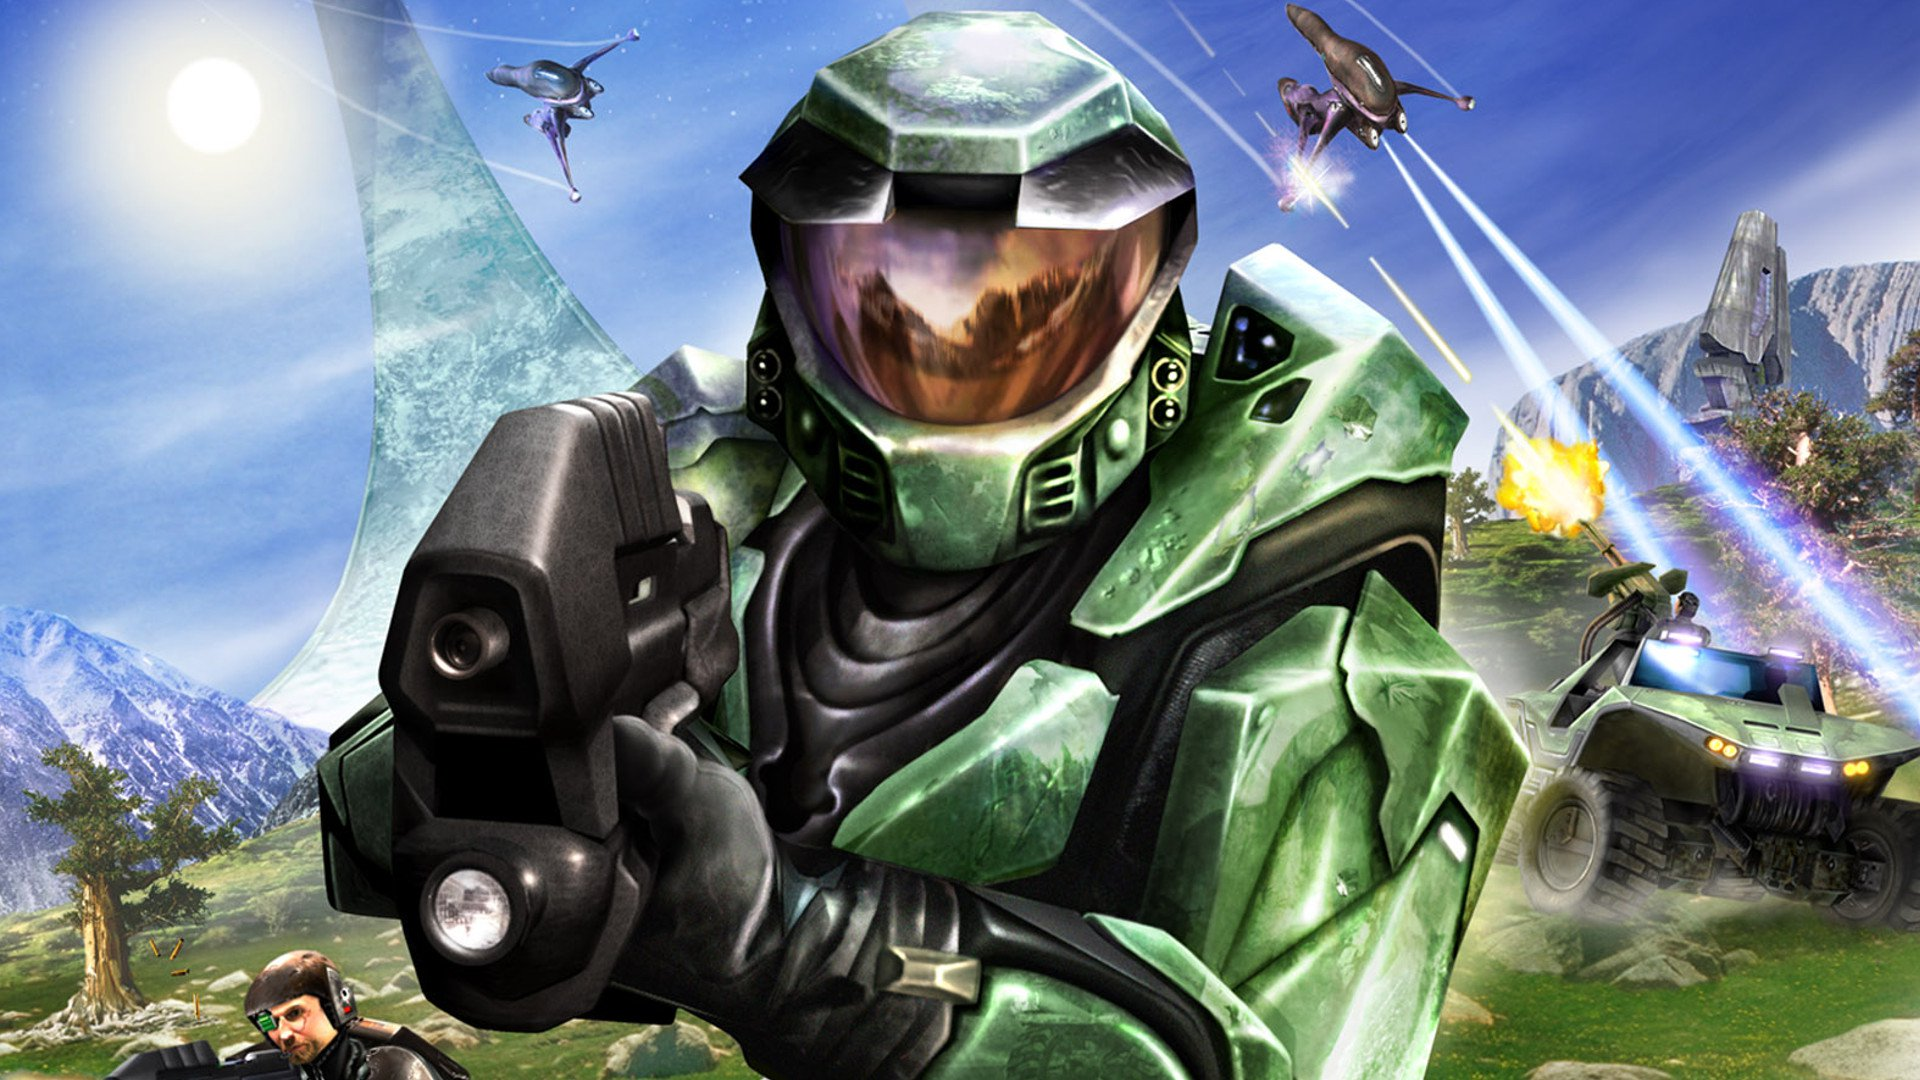 Halo composer Martin O'Donnell revealed  a Halo Wazzup spoof, in case you needed to feel ancient today